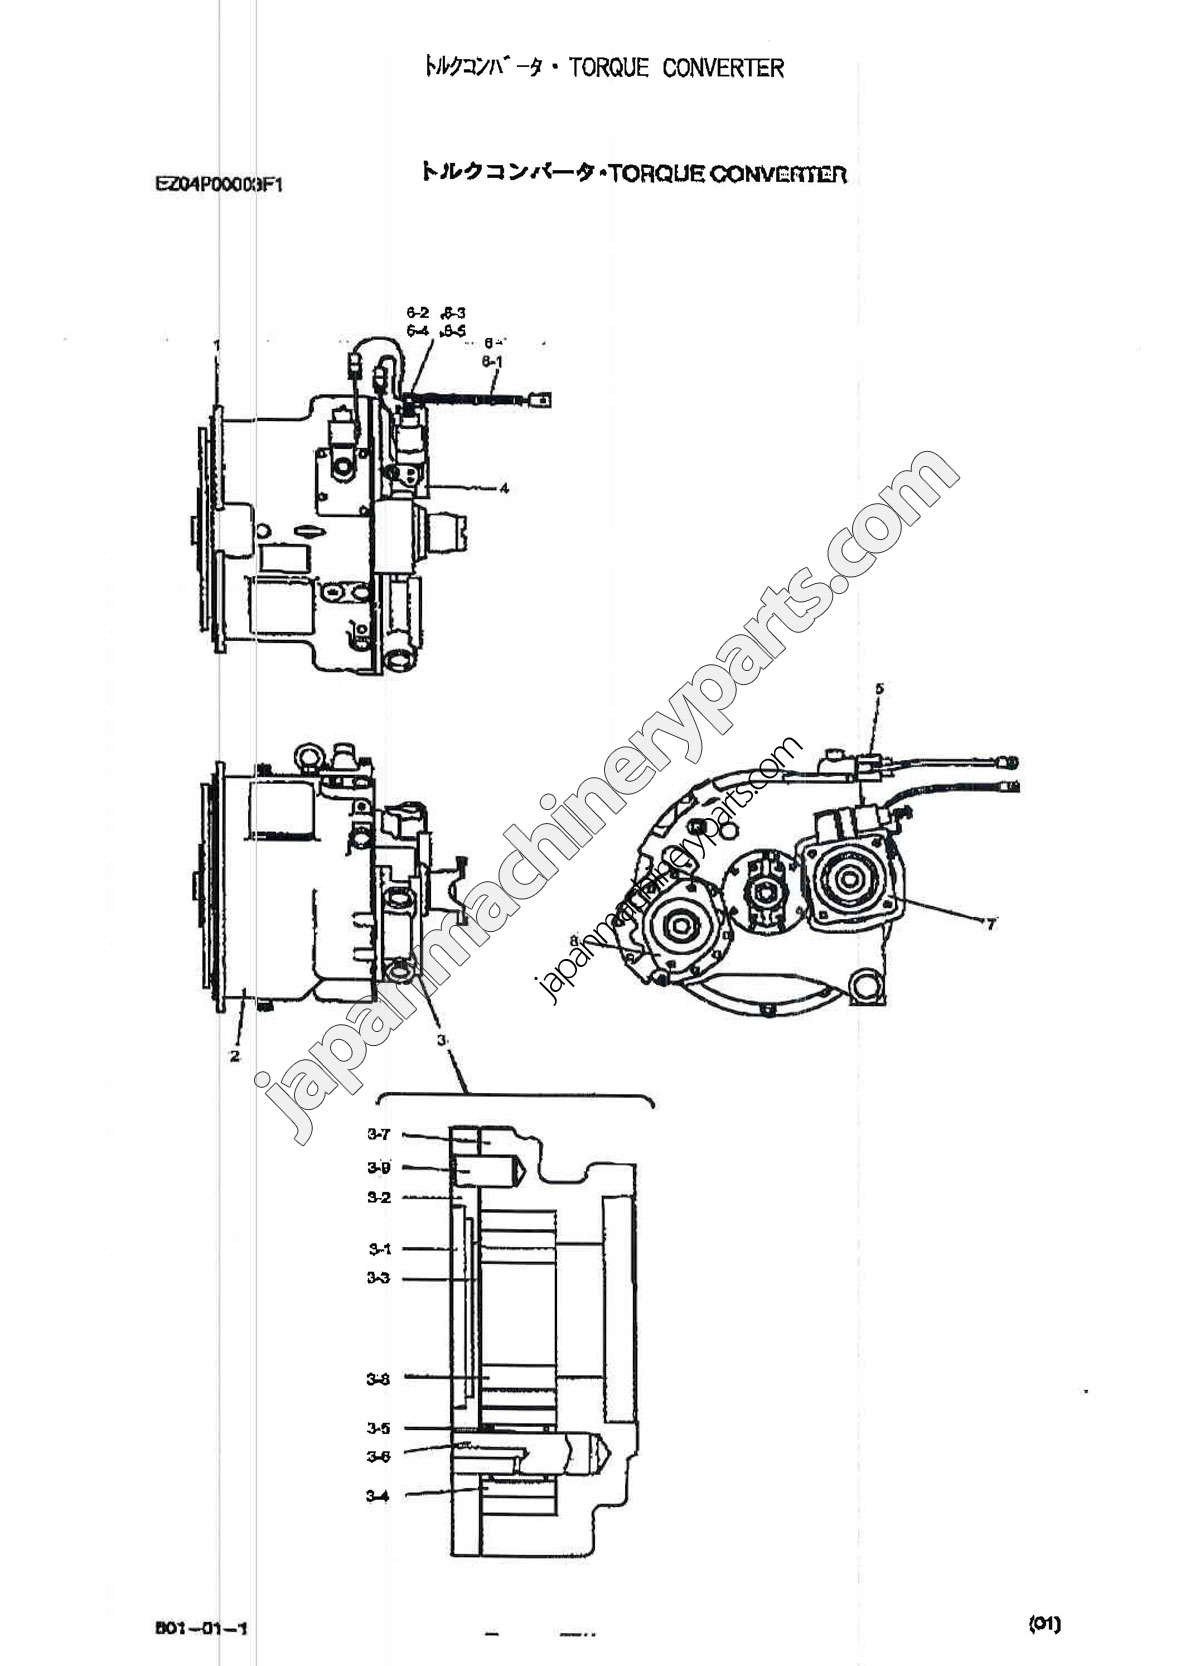 Torque Converter Diagram Parts For Kobelco Rk250 5 My